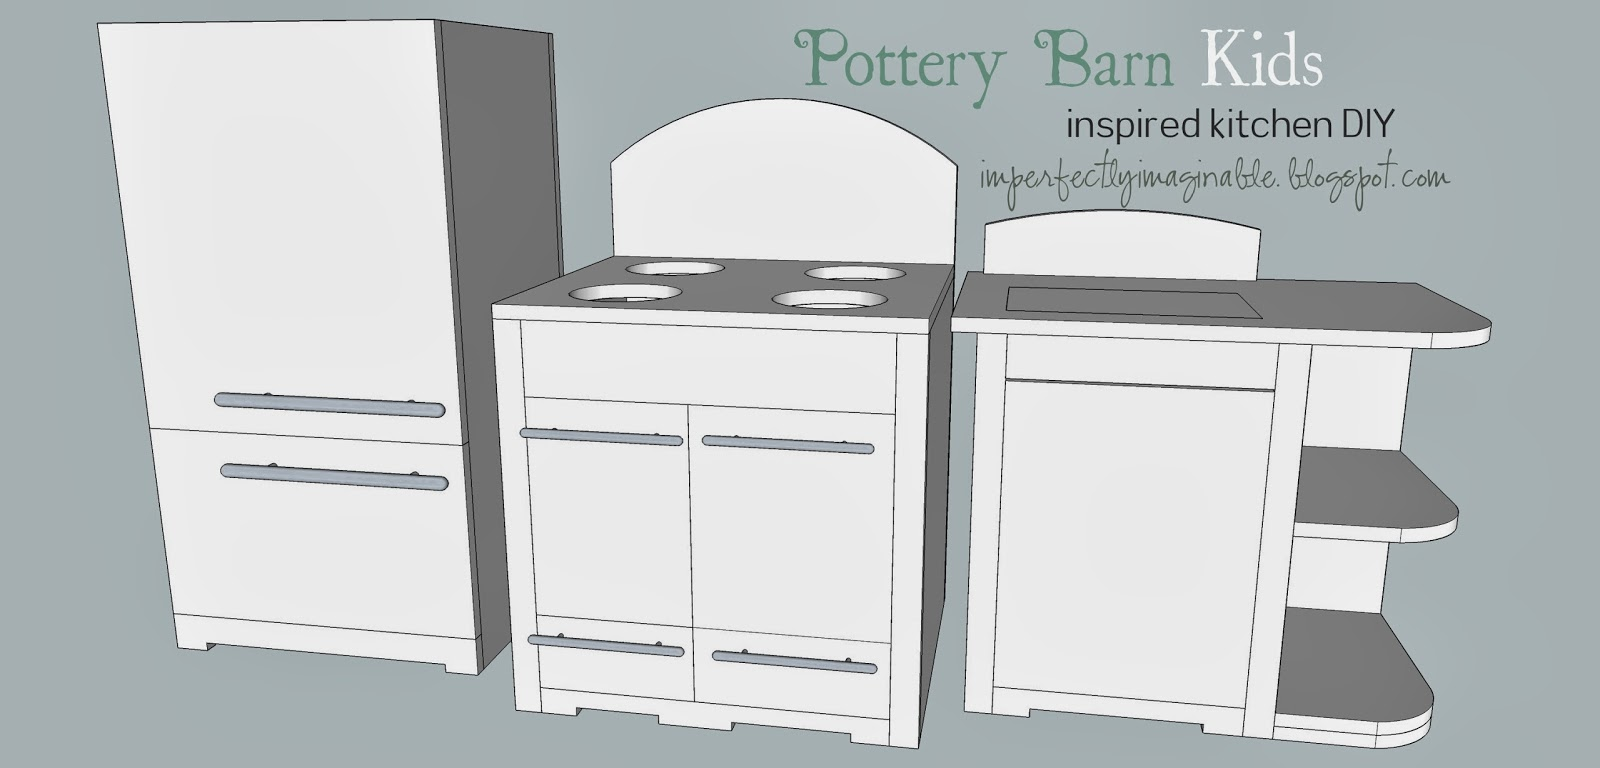 pottery barn kitchens backsplash ideas for small kitchen imperfectly imaginable kids retro